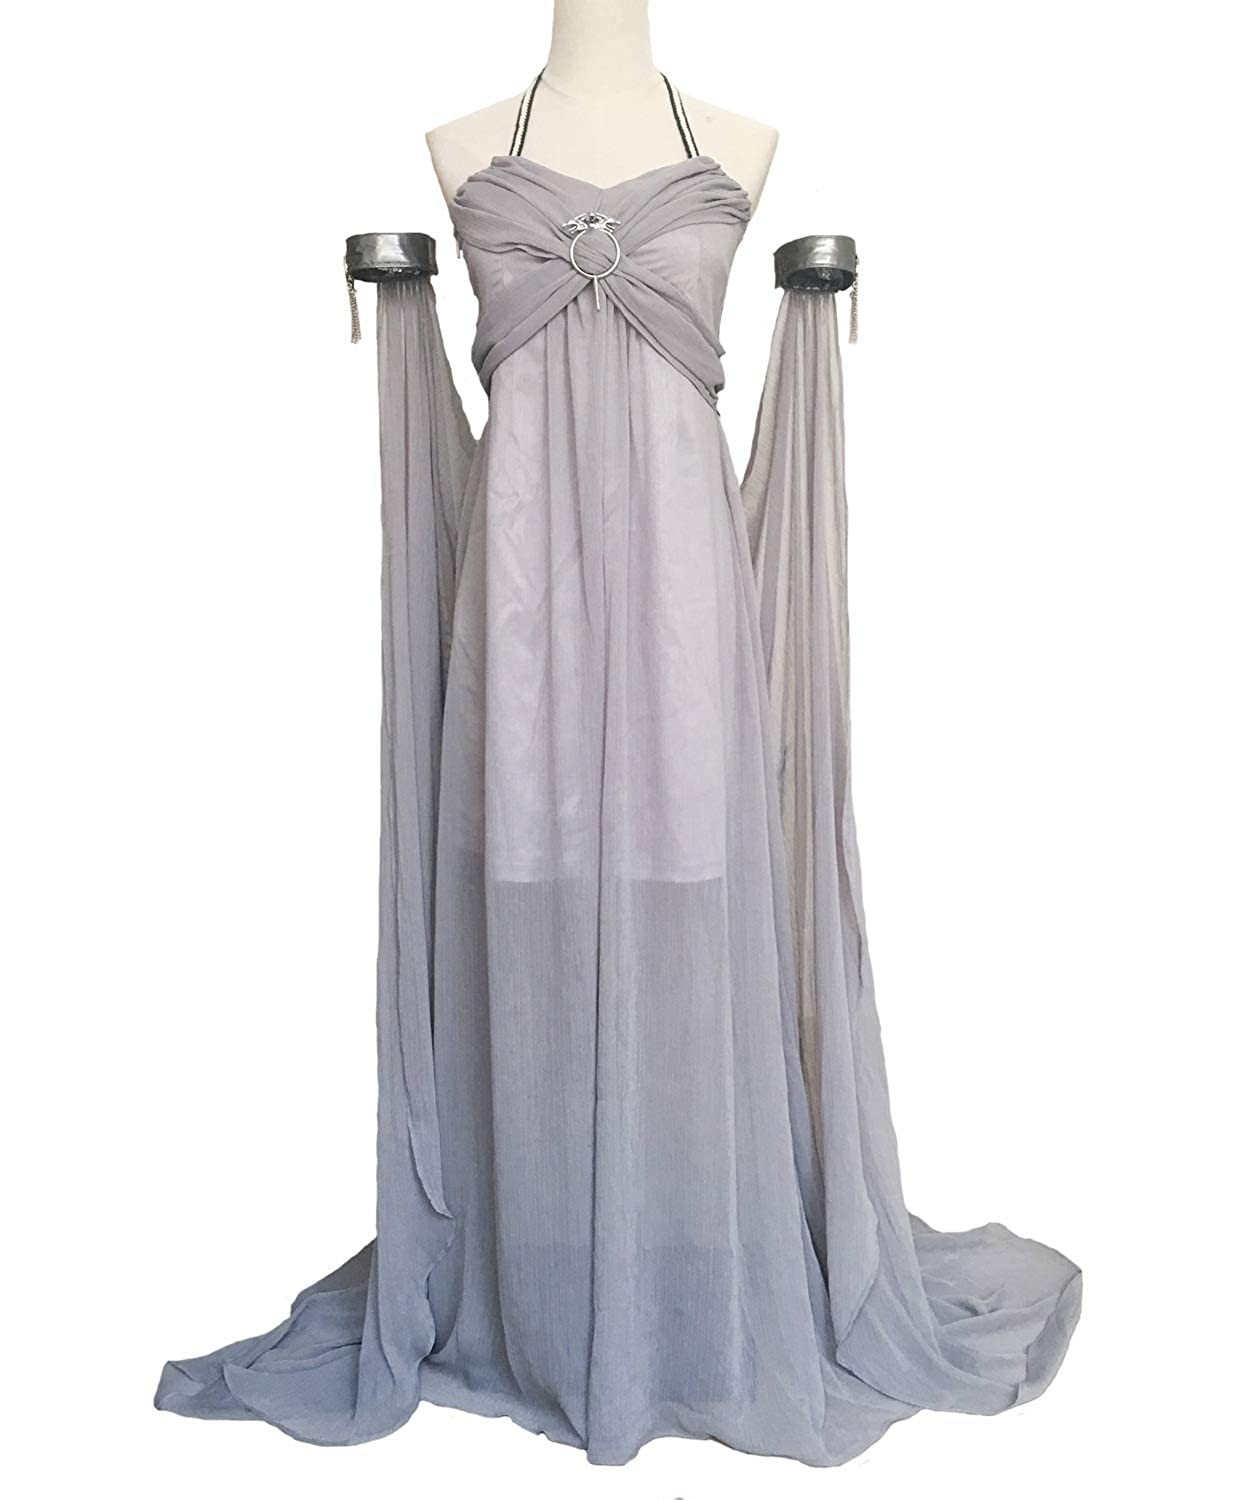 Xfang Women's Chiffon Dress Halloween Cosplay Costume Grey Long Train Dress